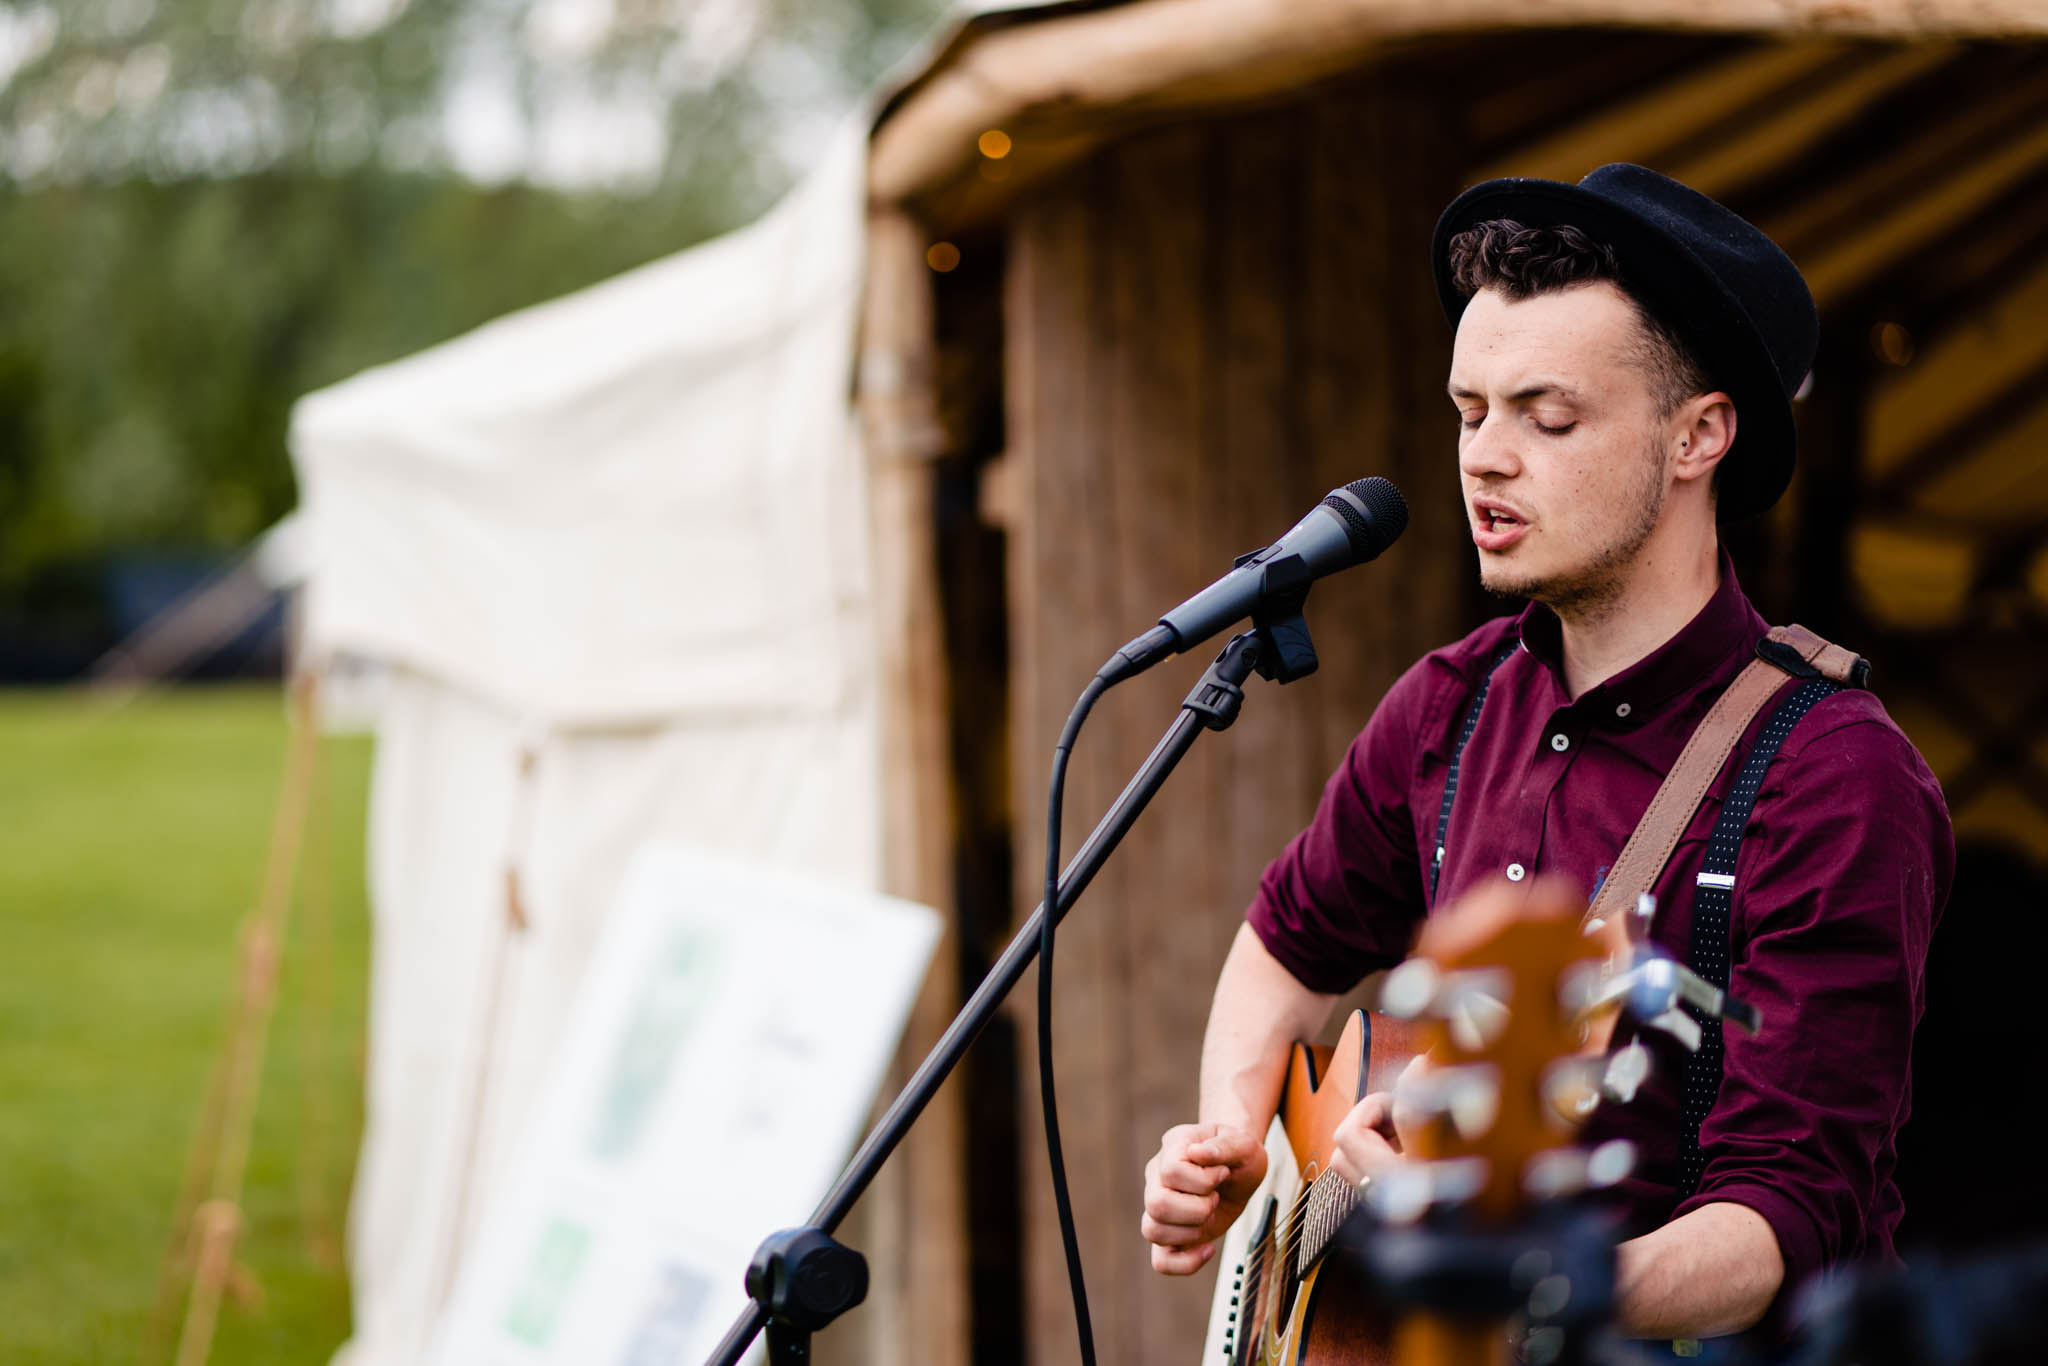 vicki clayson photography - ash francis music - unconventional wedding festival - how to plan a festival wedding